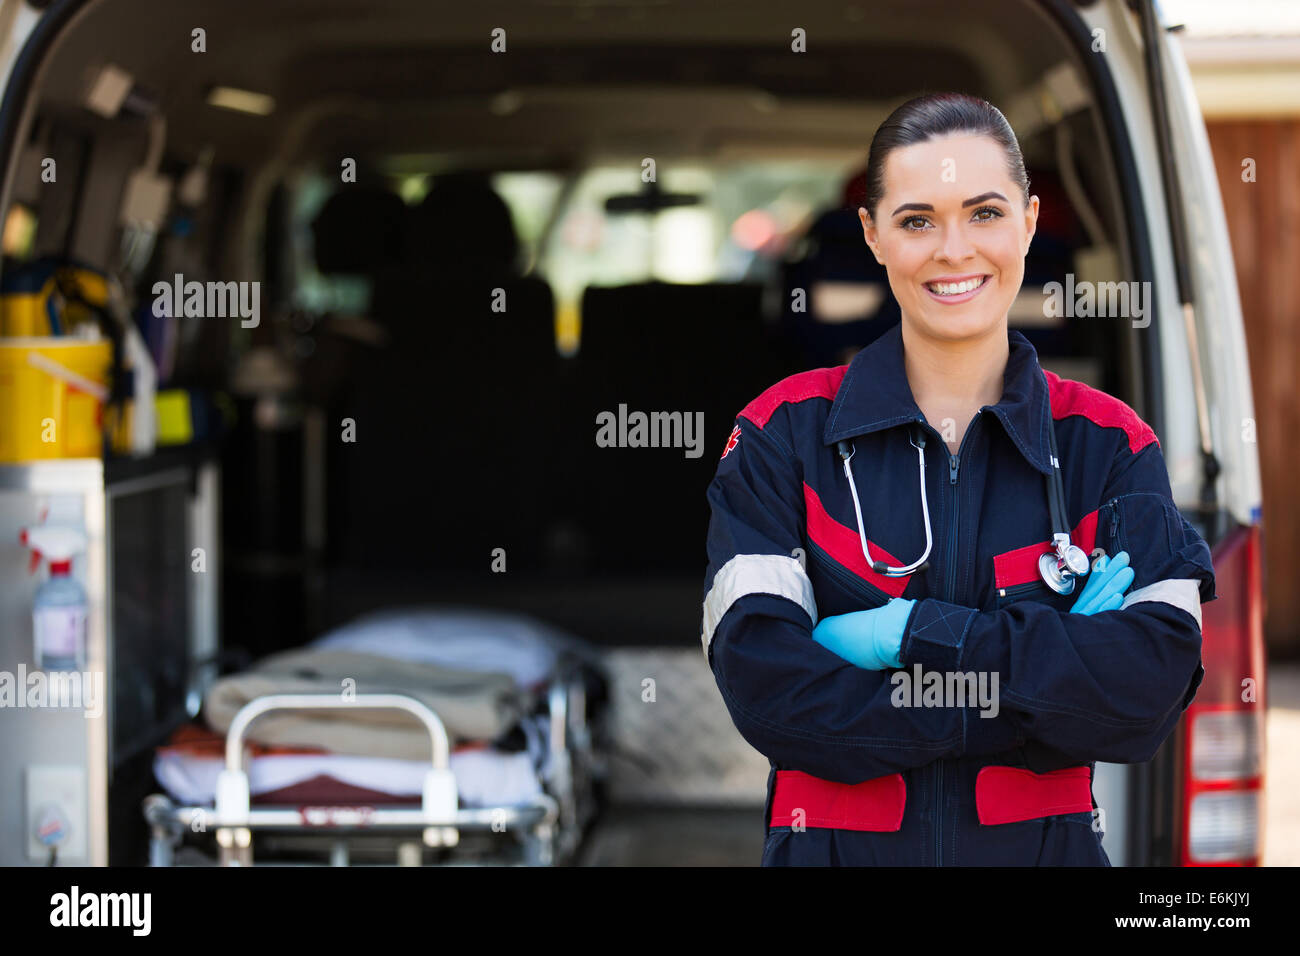 attractive young female emergency medical service worker in front of ambulance Stock Photo